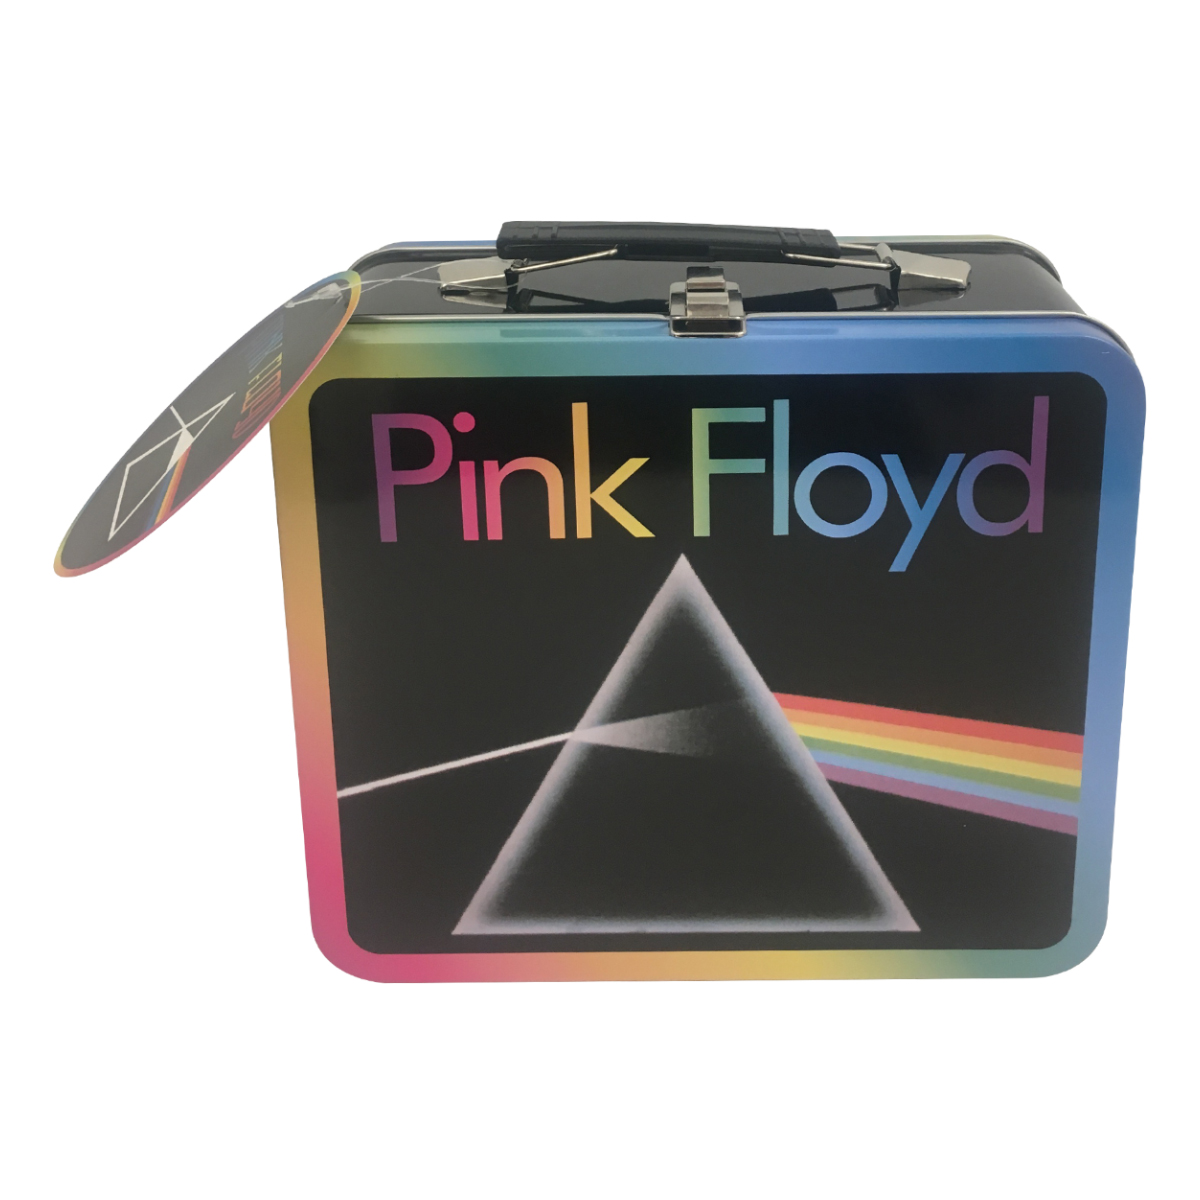 Pink Floyd Lunchbox Multicolor